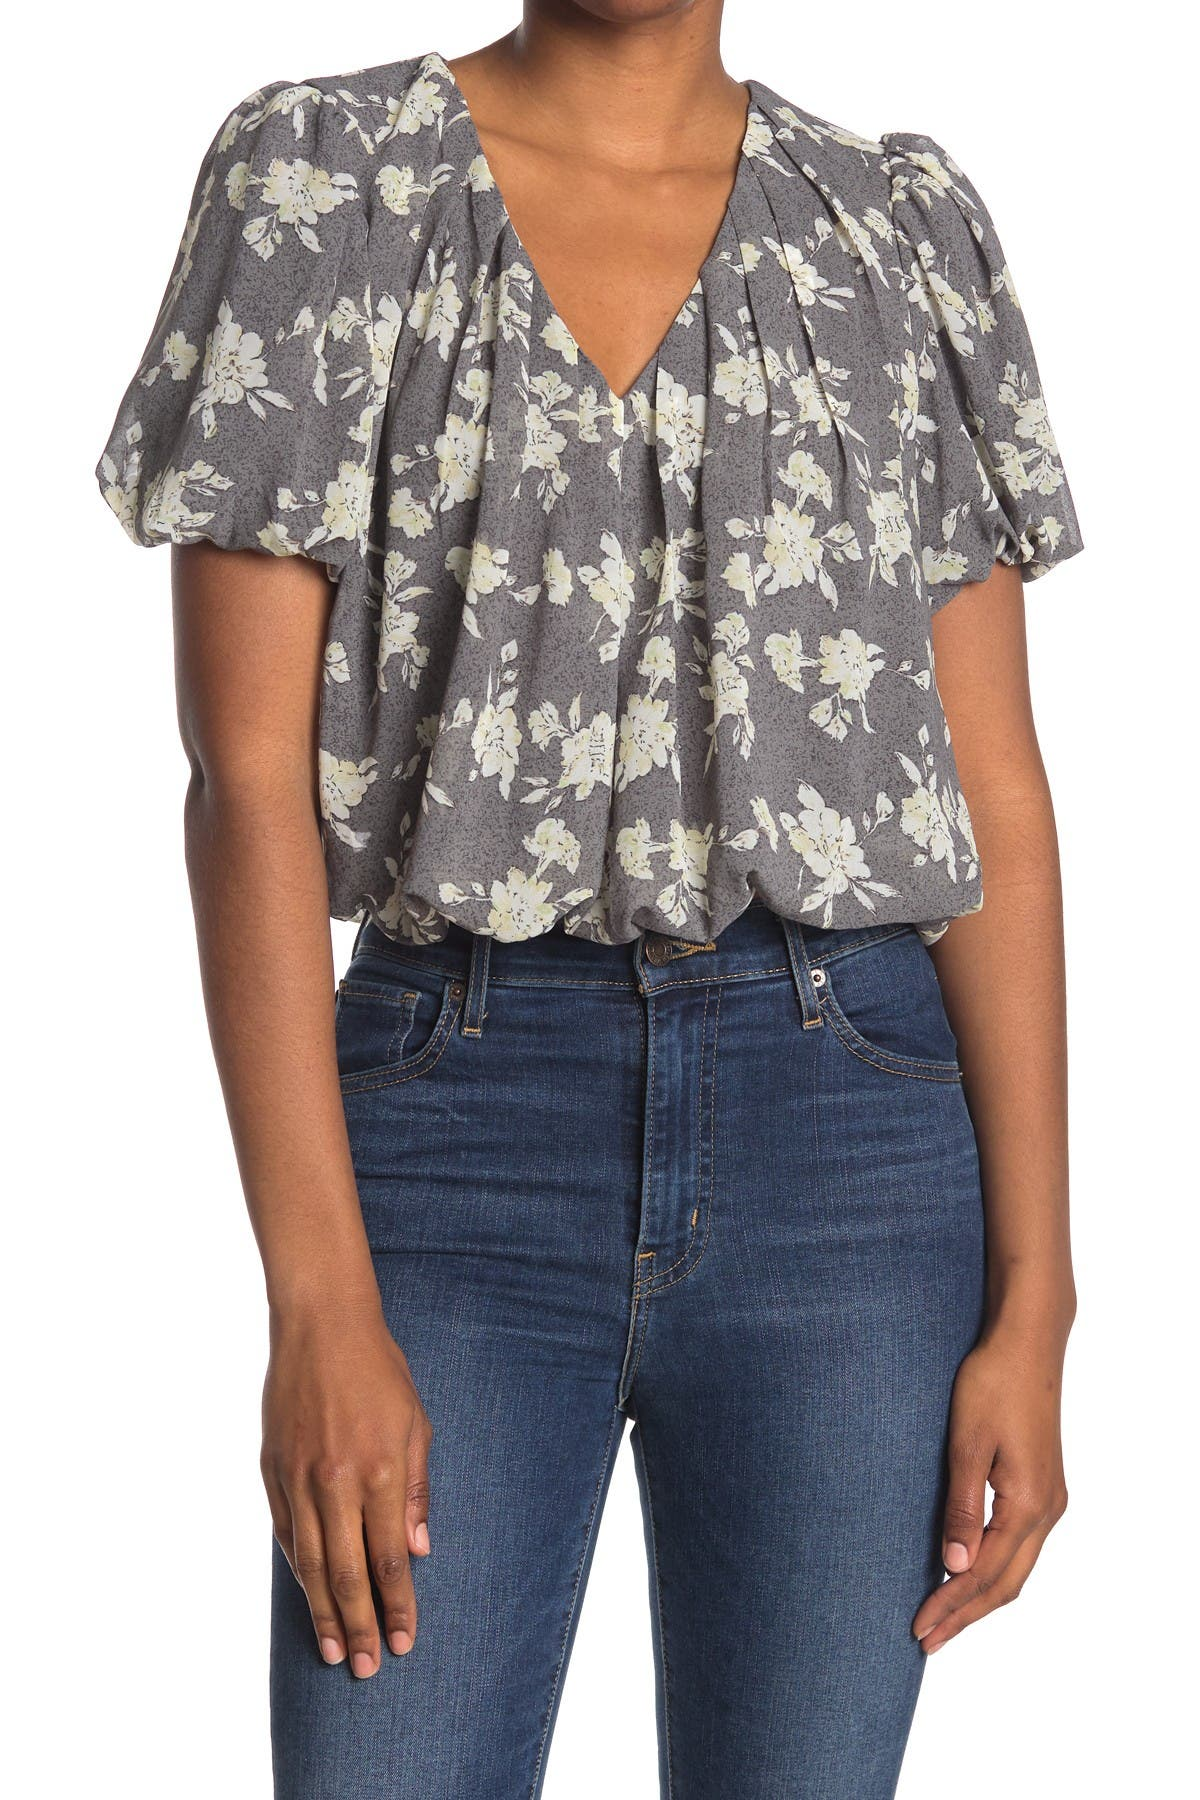 Image of ASTR the Label Bubble Hem Short Sleeve Top